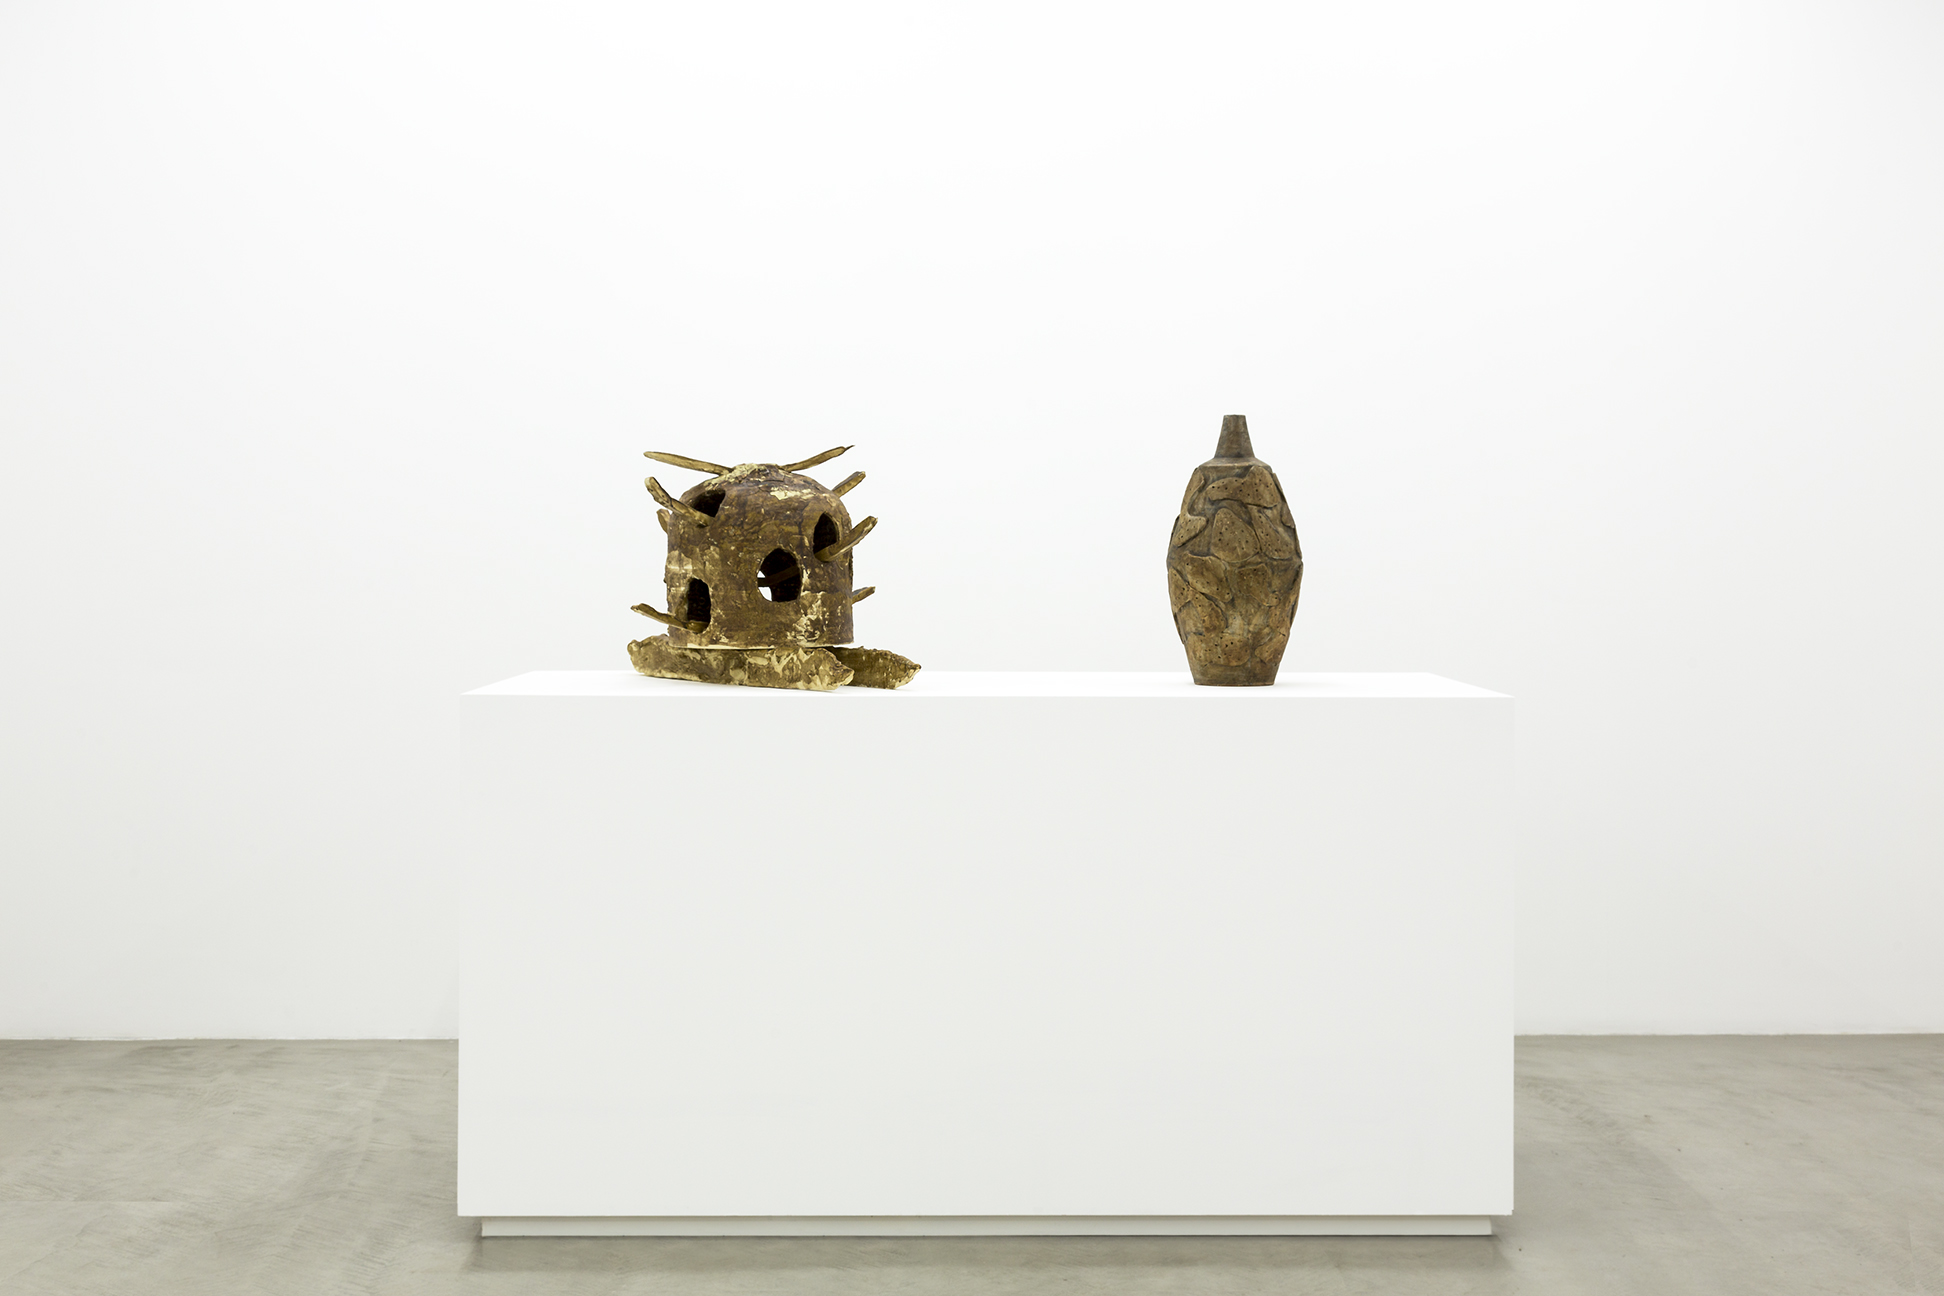 Installation view of Jesse Wine and Peter Voulkos works in abstract ceramic forms.